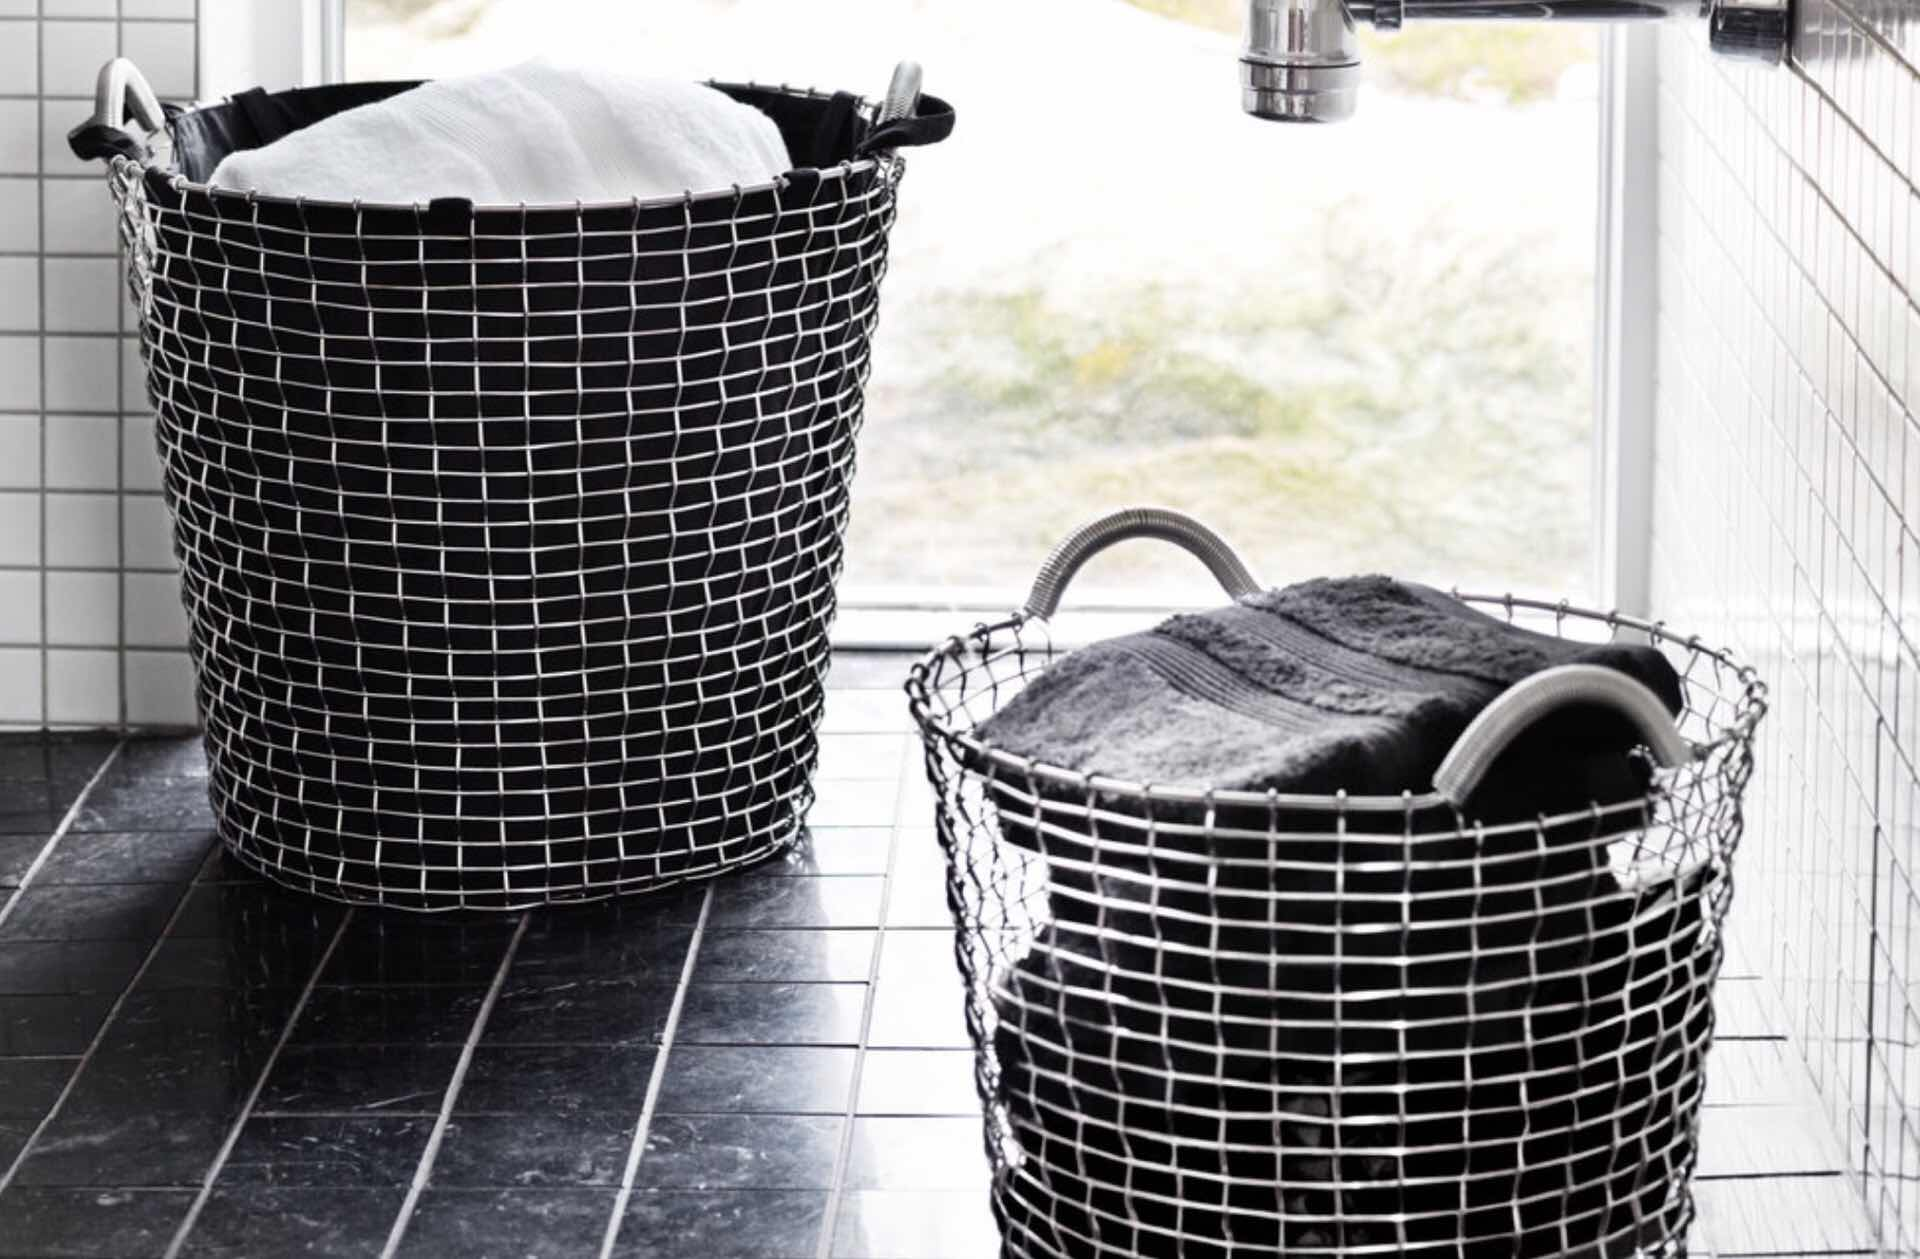 korbo-classic-series-laundry-baskets